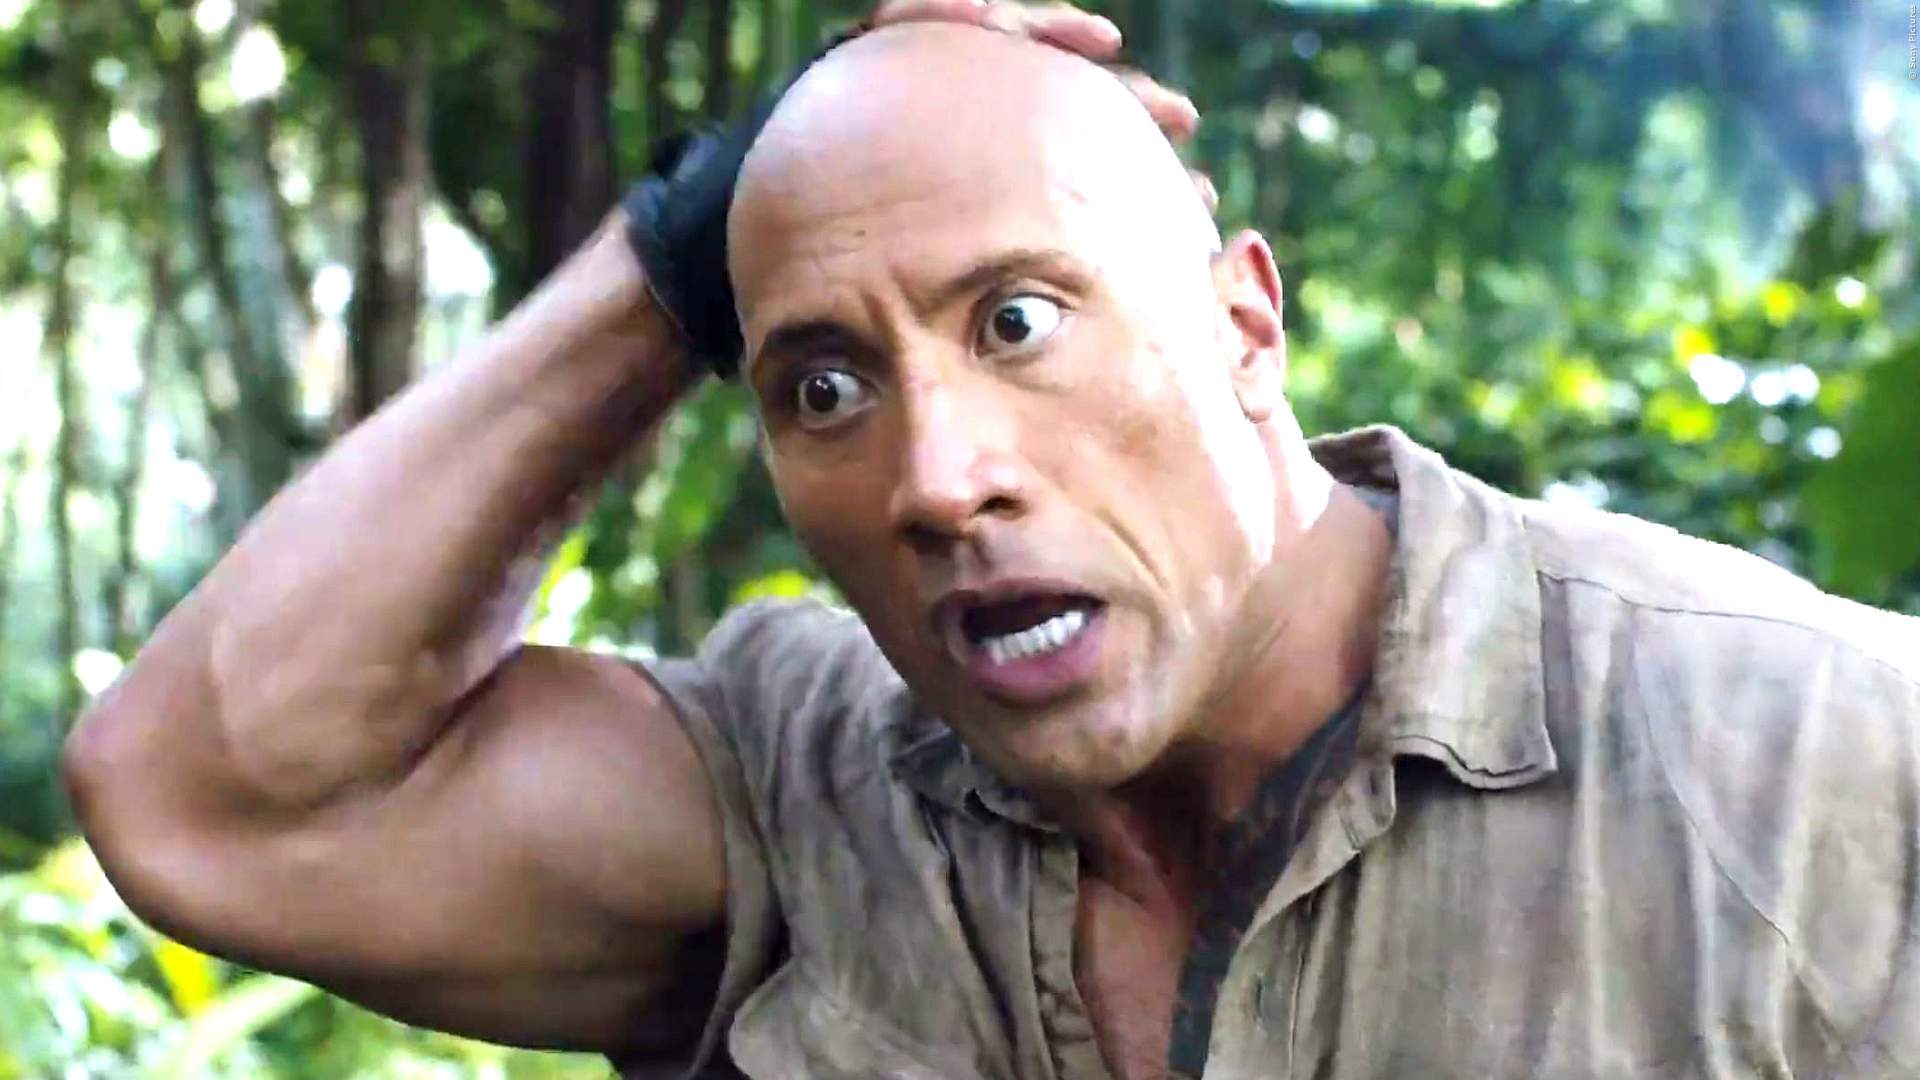 KINO-START: The Rock legt sich mit 'Jumanji 2' mit 'Star Wars' an